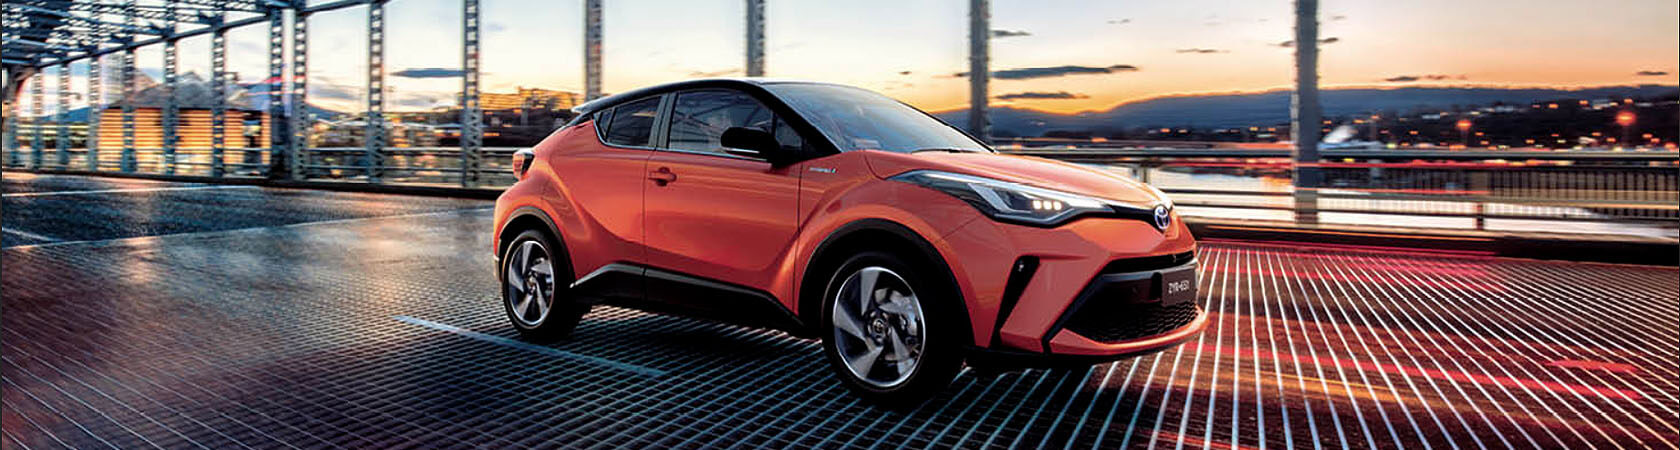 Callide Valley Toyota C-HR